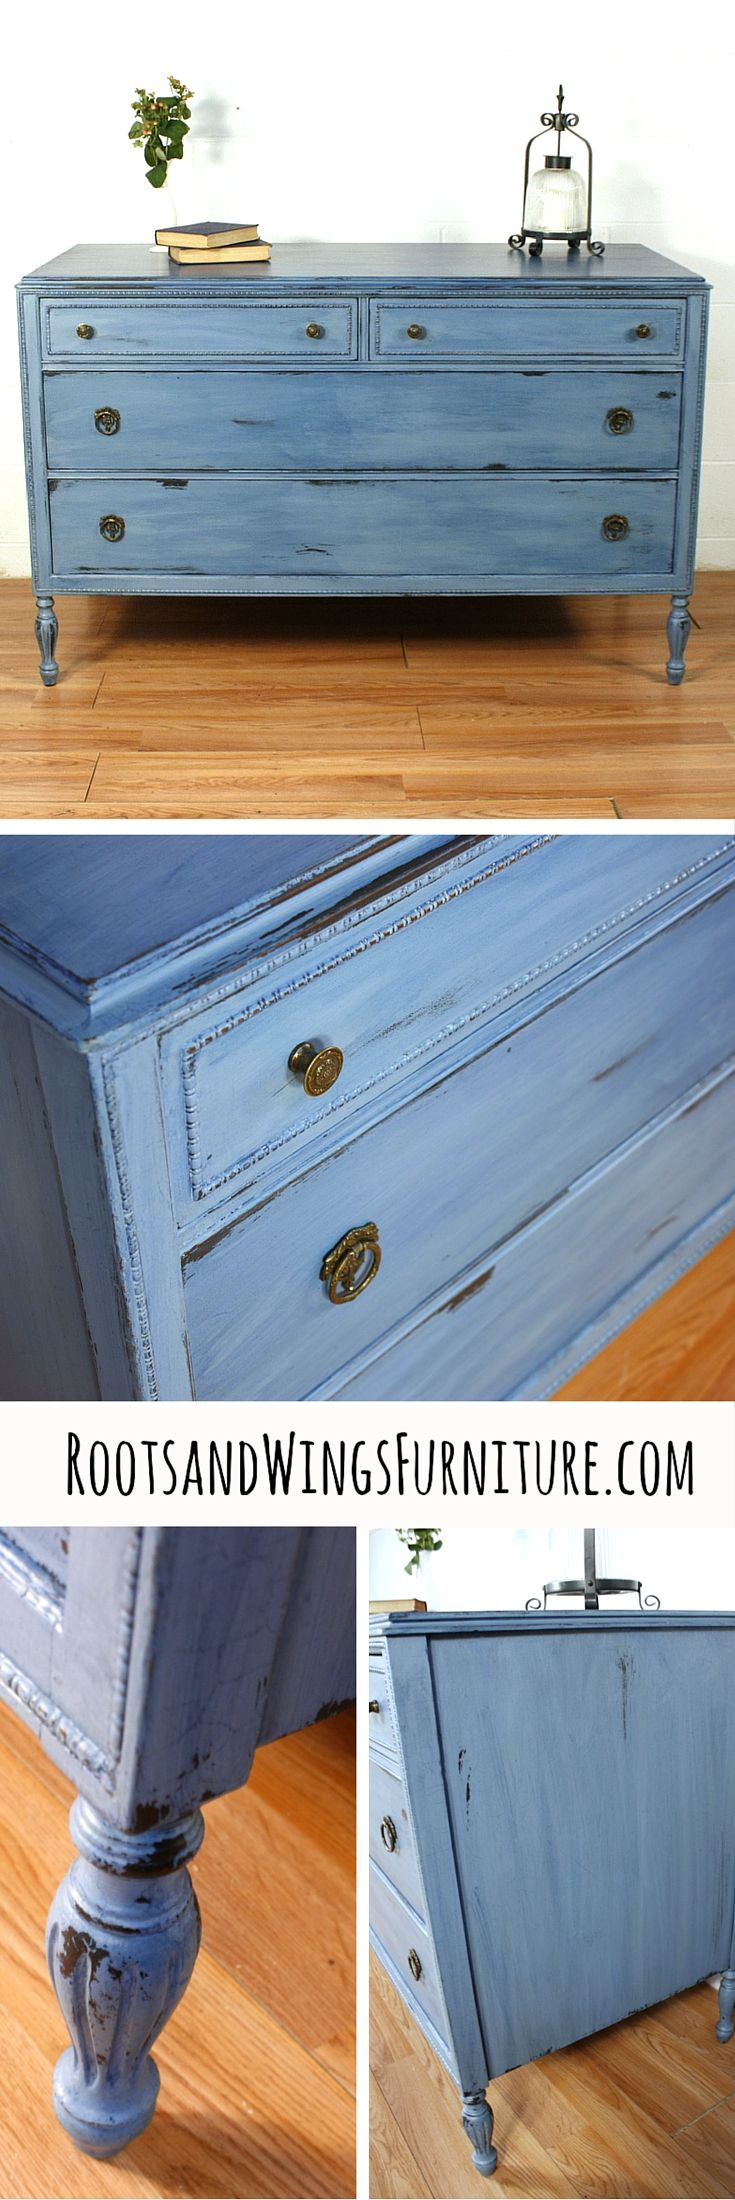 Antique Dresser Refinished In General Finishes Stillwater Blue By Roots And  Wings Furniture. Color